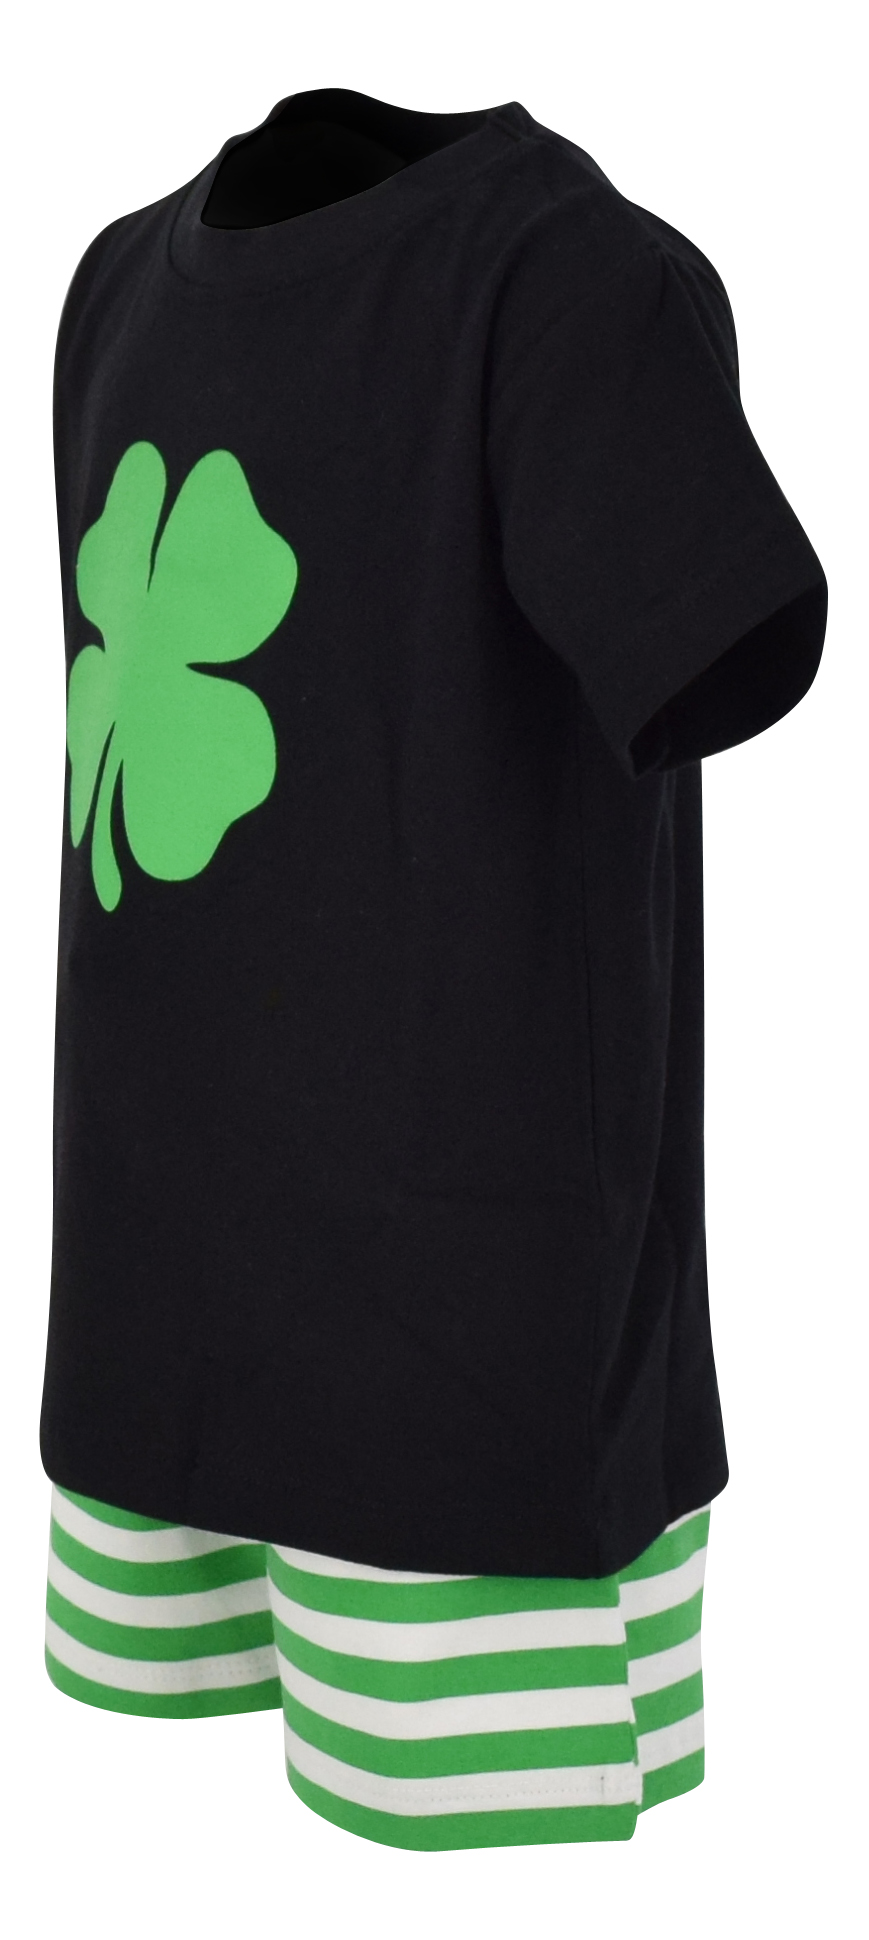 Boys-2-Piece-ST-Patricks-Day-Clover-Outfit-2t-3t-4t-5-6-7-8-Toddler-Kids-Clothes thumbnail 44